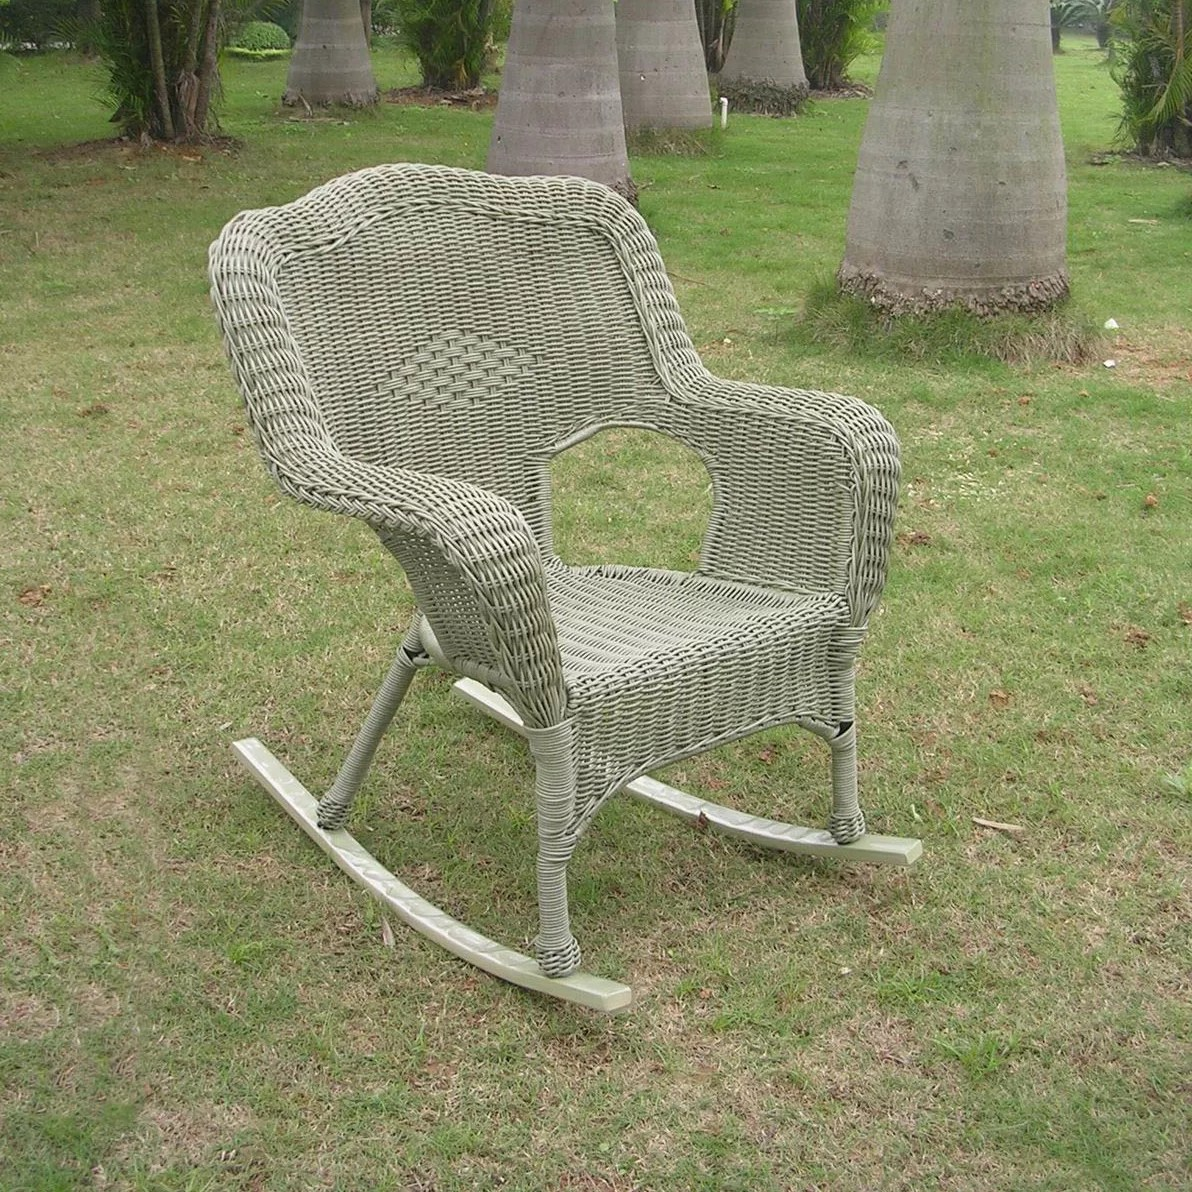 Resin Wicker Rocking Chair International Caravan Chelsea Outdoor Wicker Resin Patio